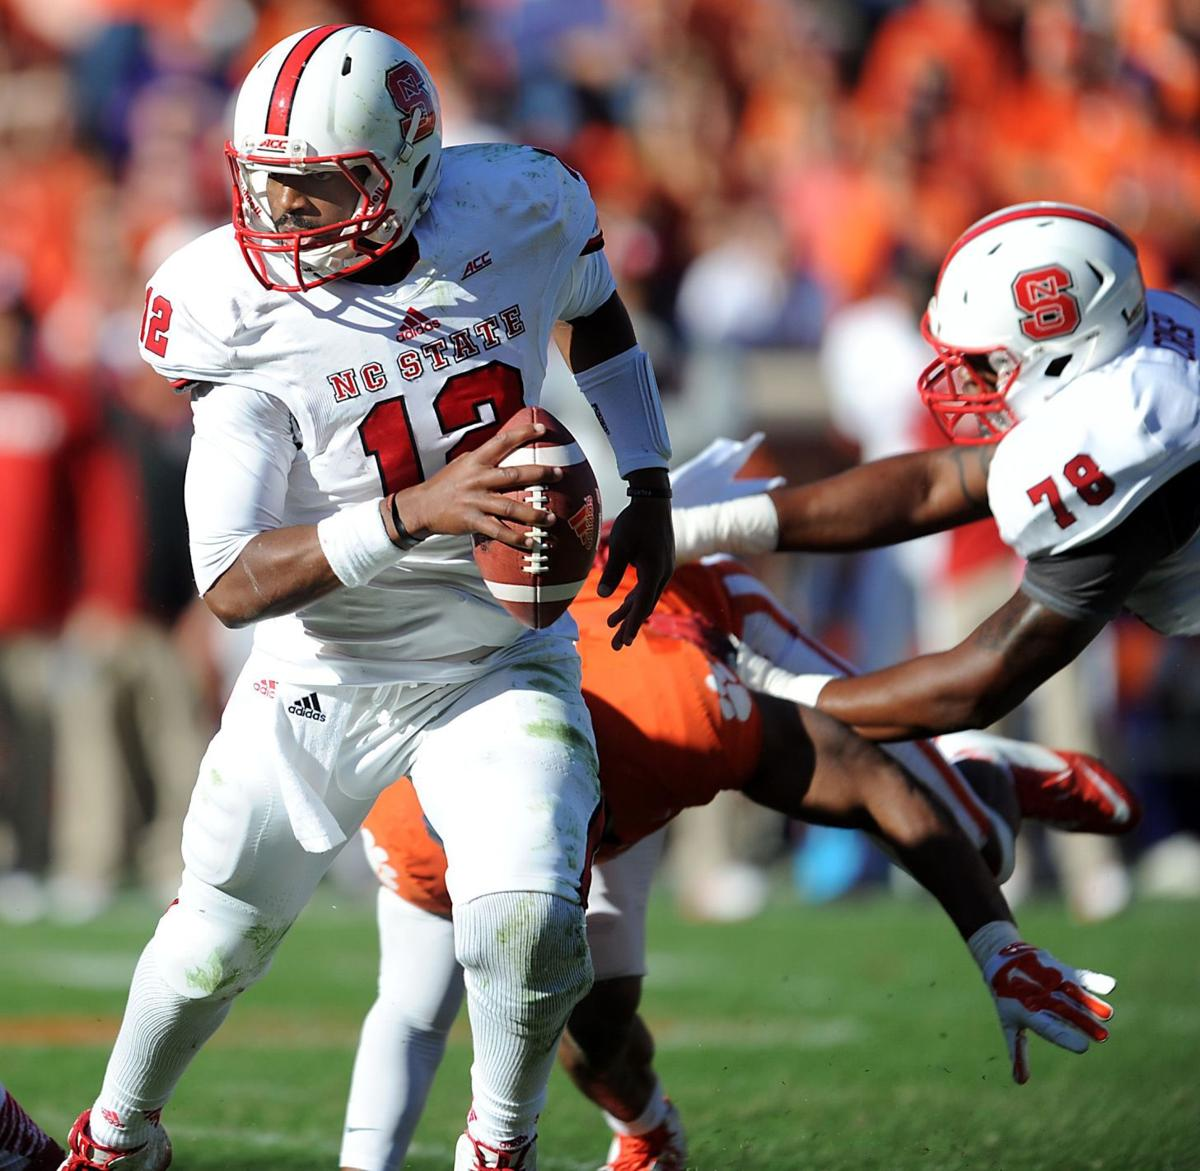 Clemson opponent preview No. 8: at N.C. State, Oct. 31